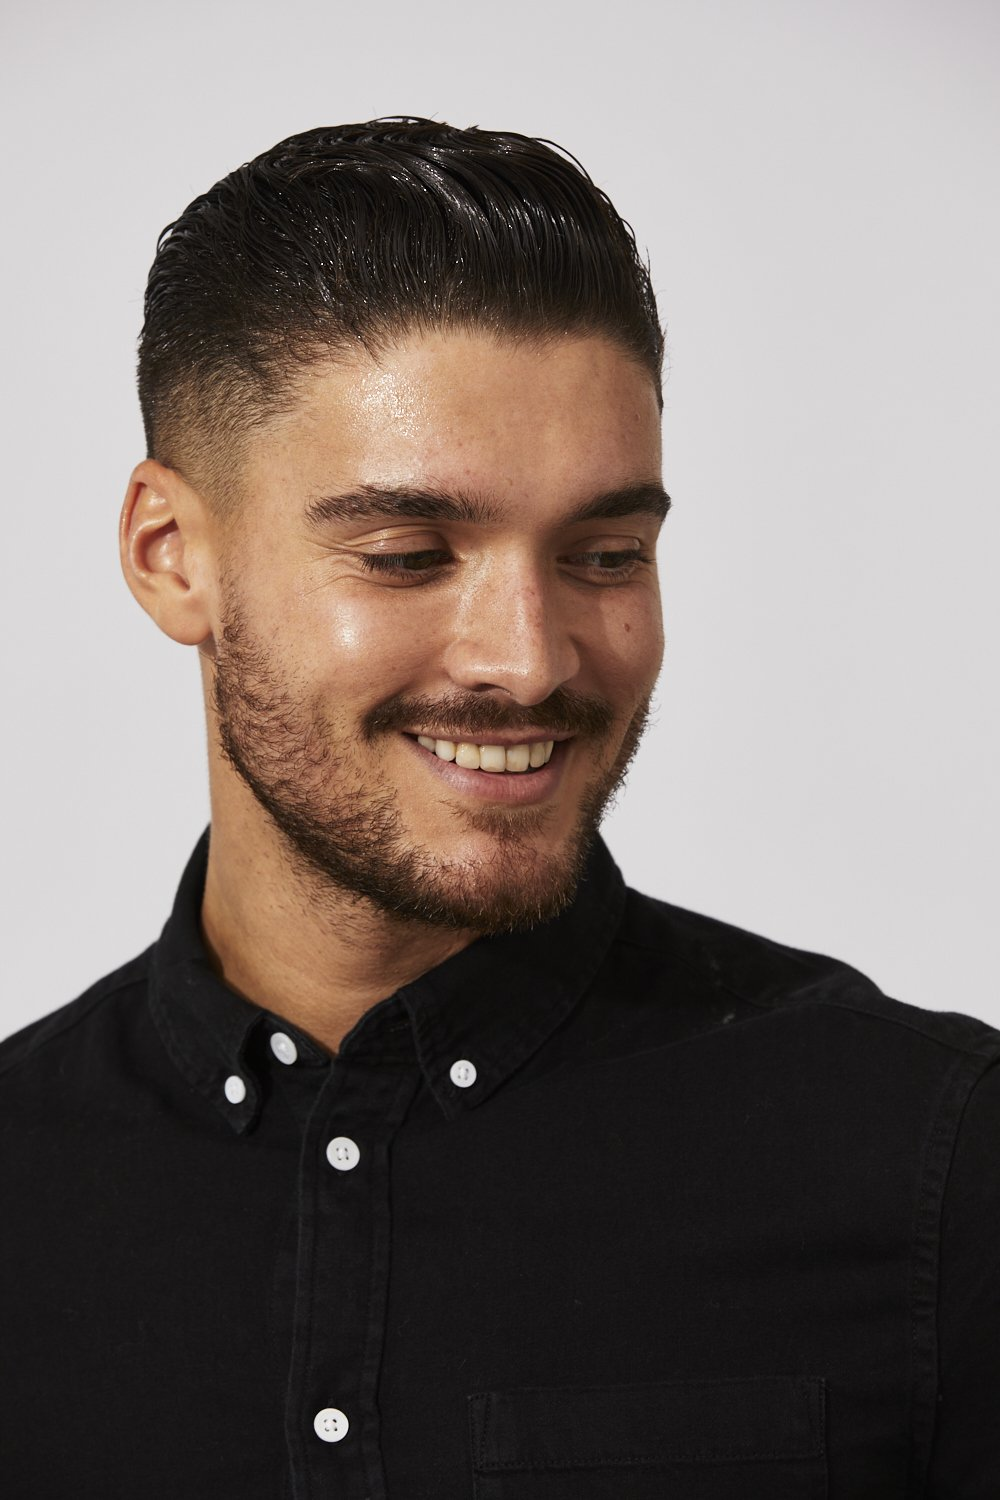 65 Best Haircuts and Hairstyles For Men in 2020 | All Things Hair